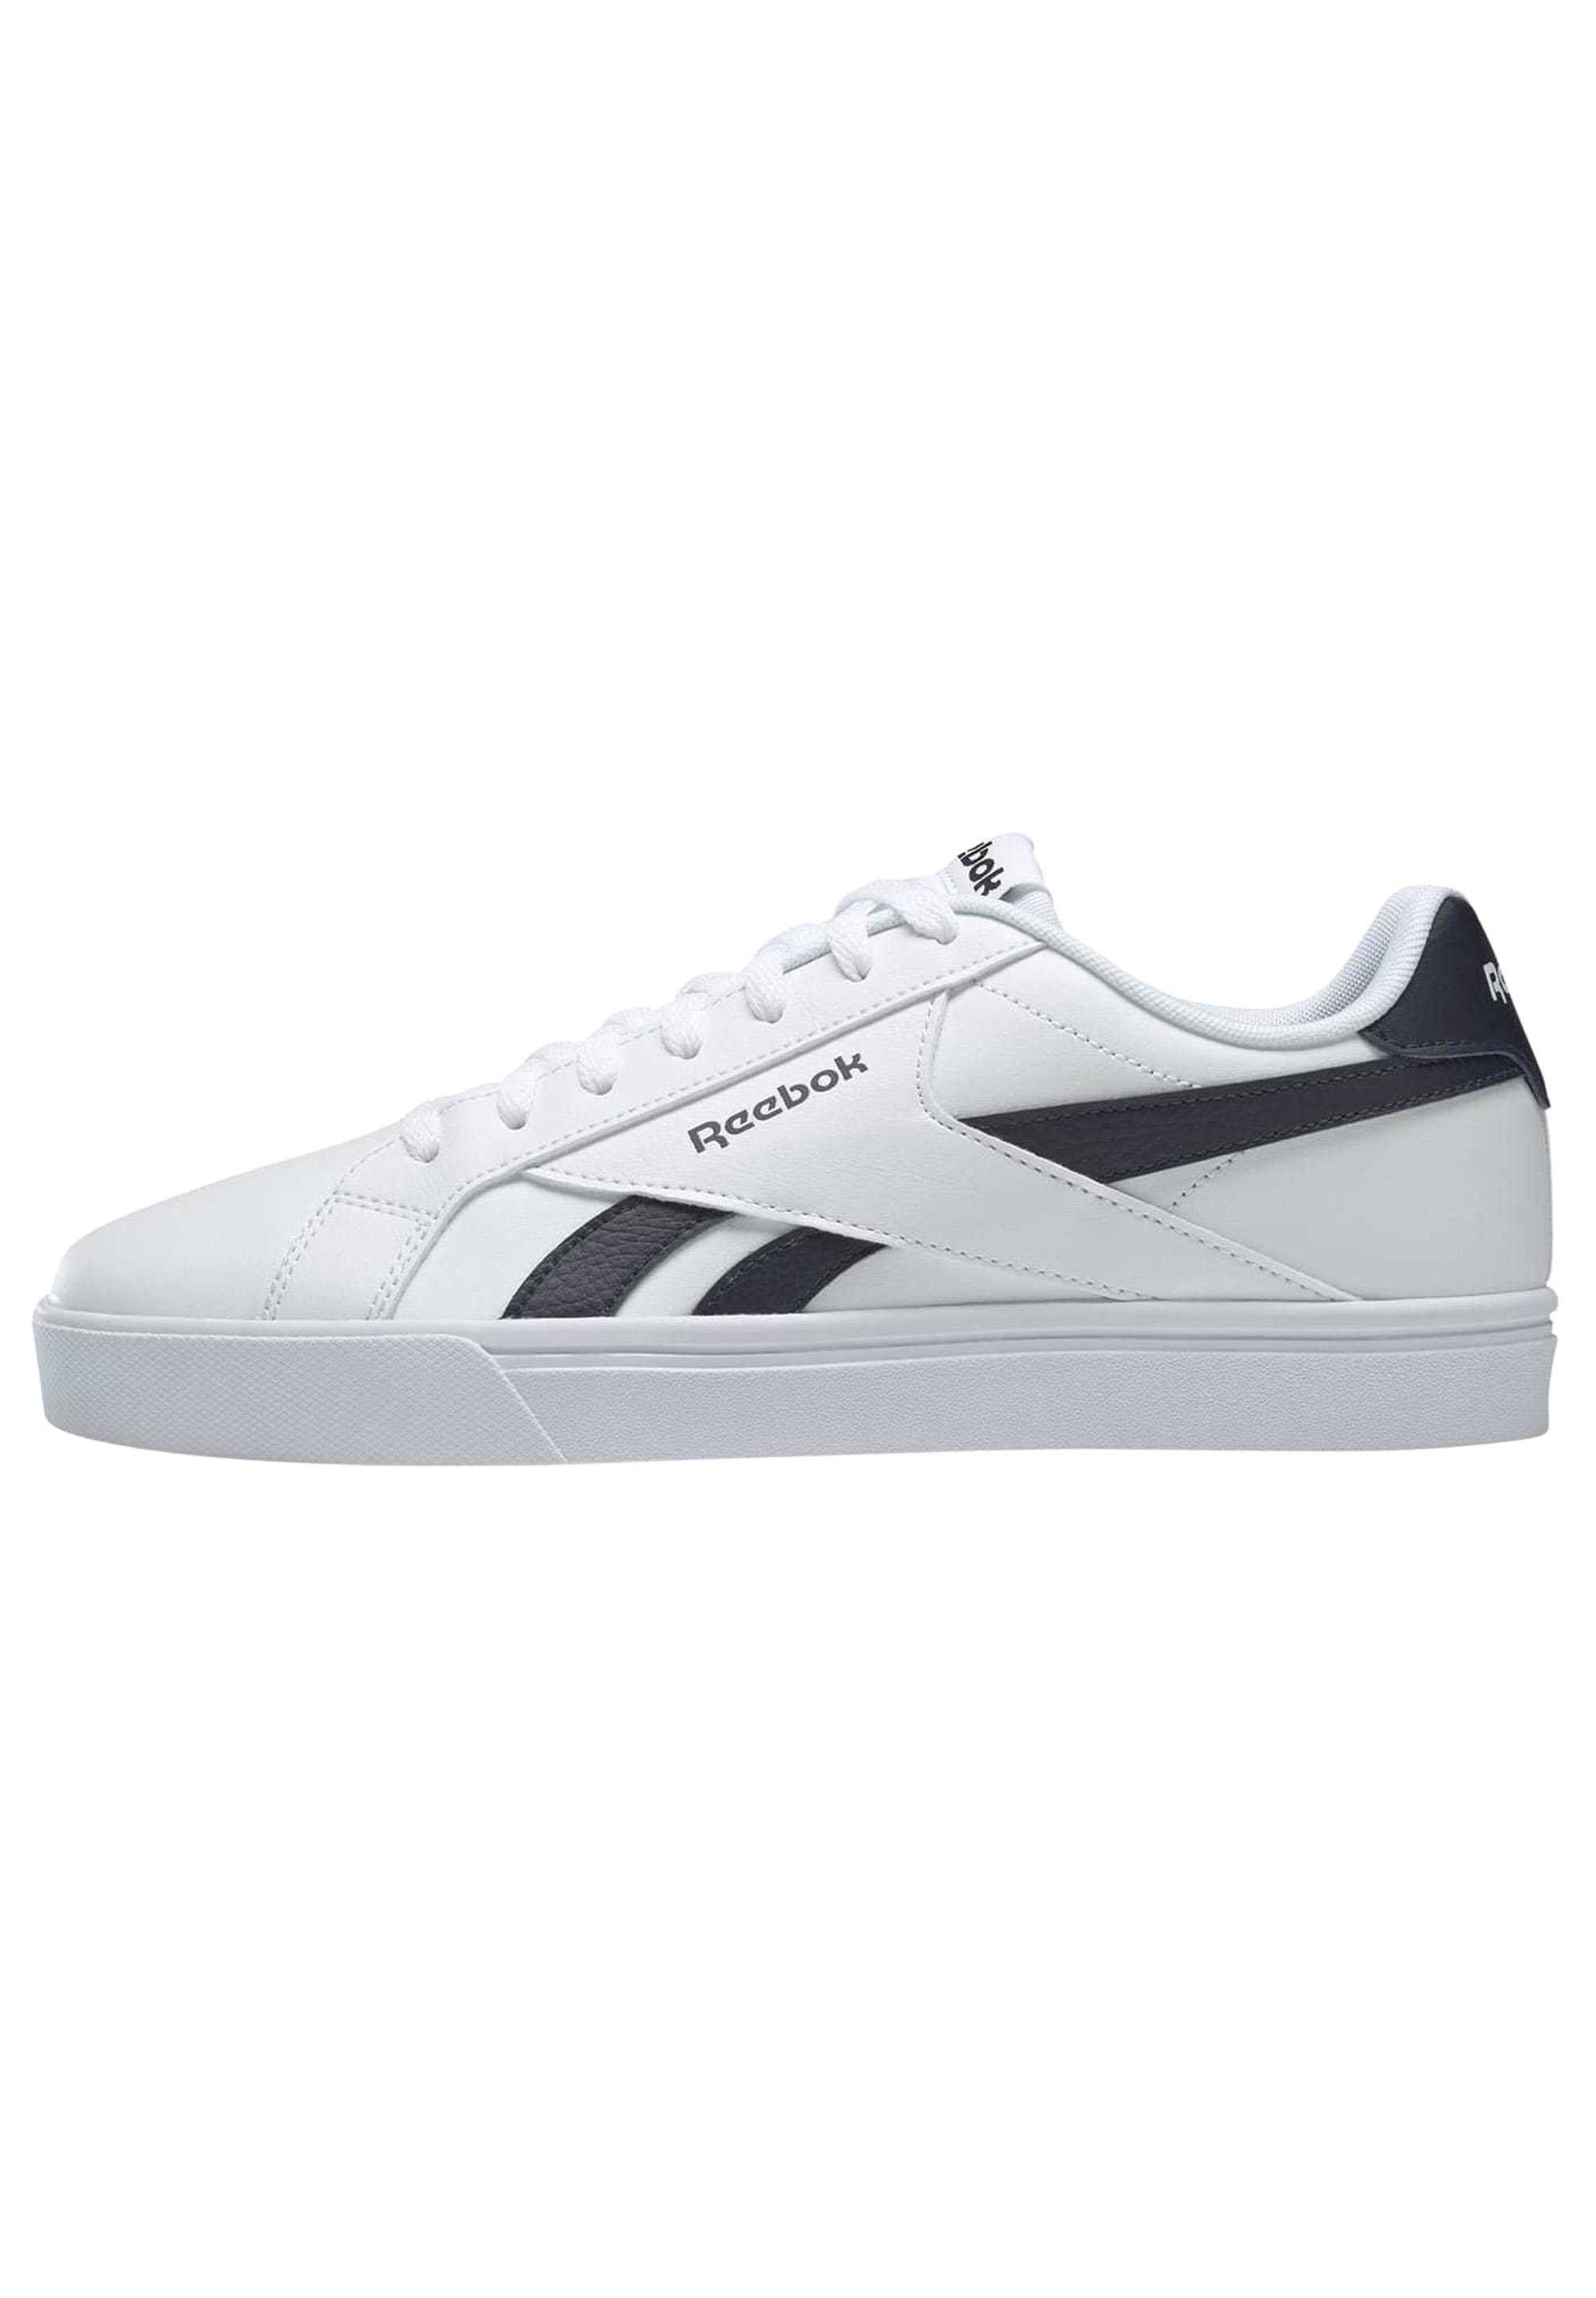 Homme REEBOK ROYAL COMPLETE 3.0 LOW SHOES - Baskets basses